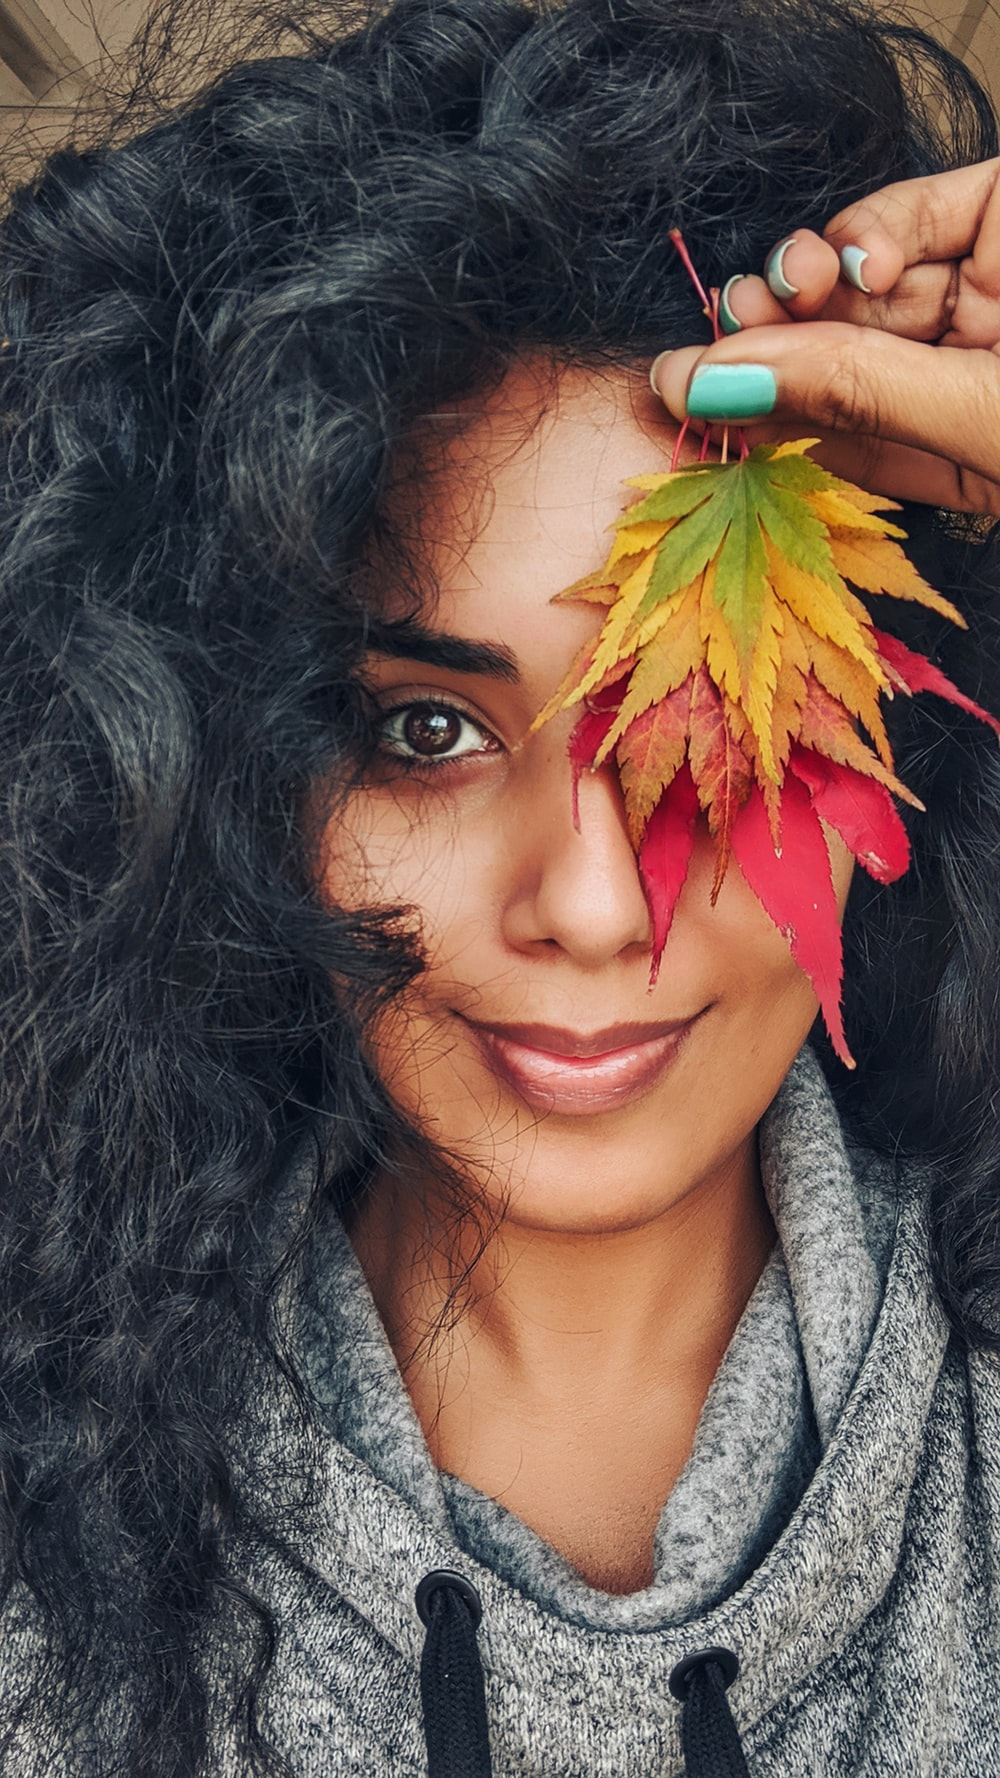 woman holding withered leaves